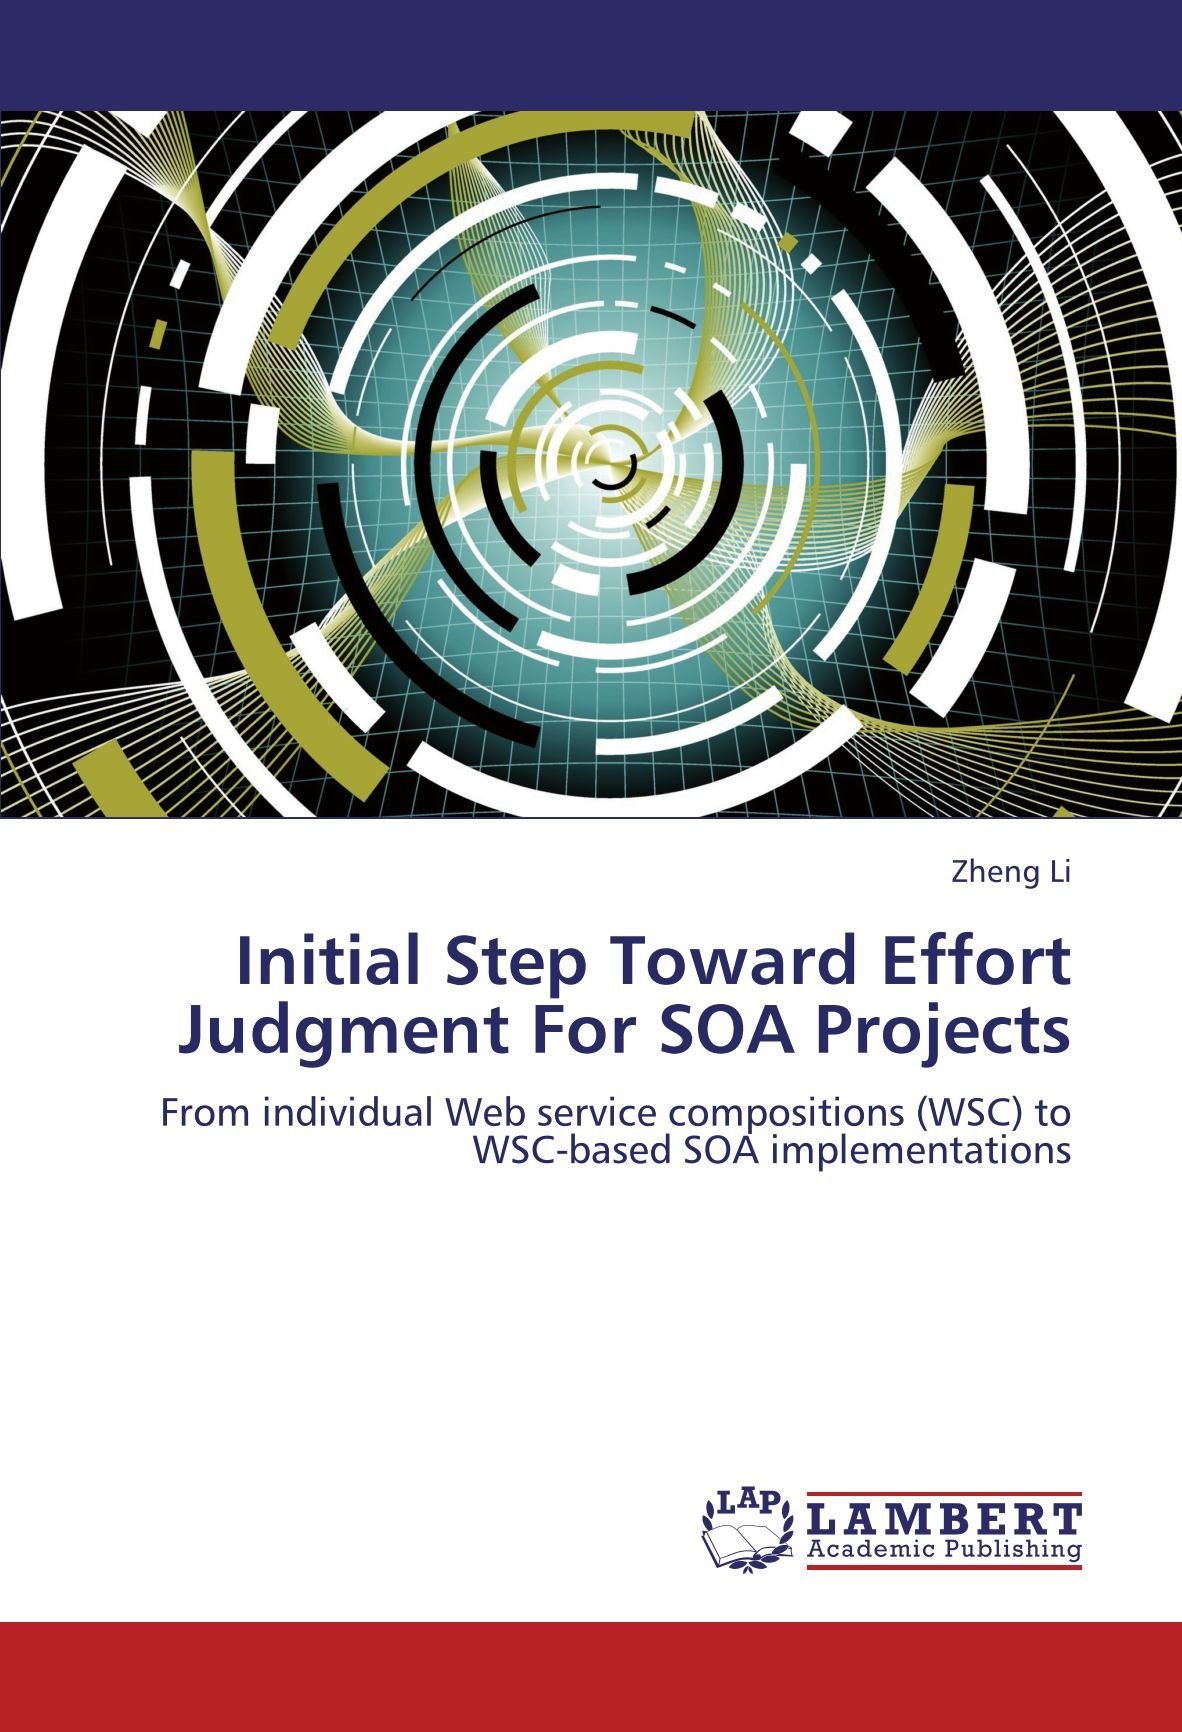 Initial Step Toward Effort Judgment For SOA Projects: From individual Web service compositions (WSC) to WSC-based SOA implementations